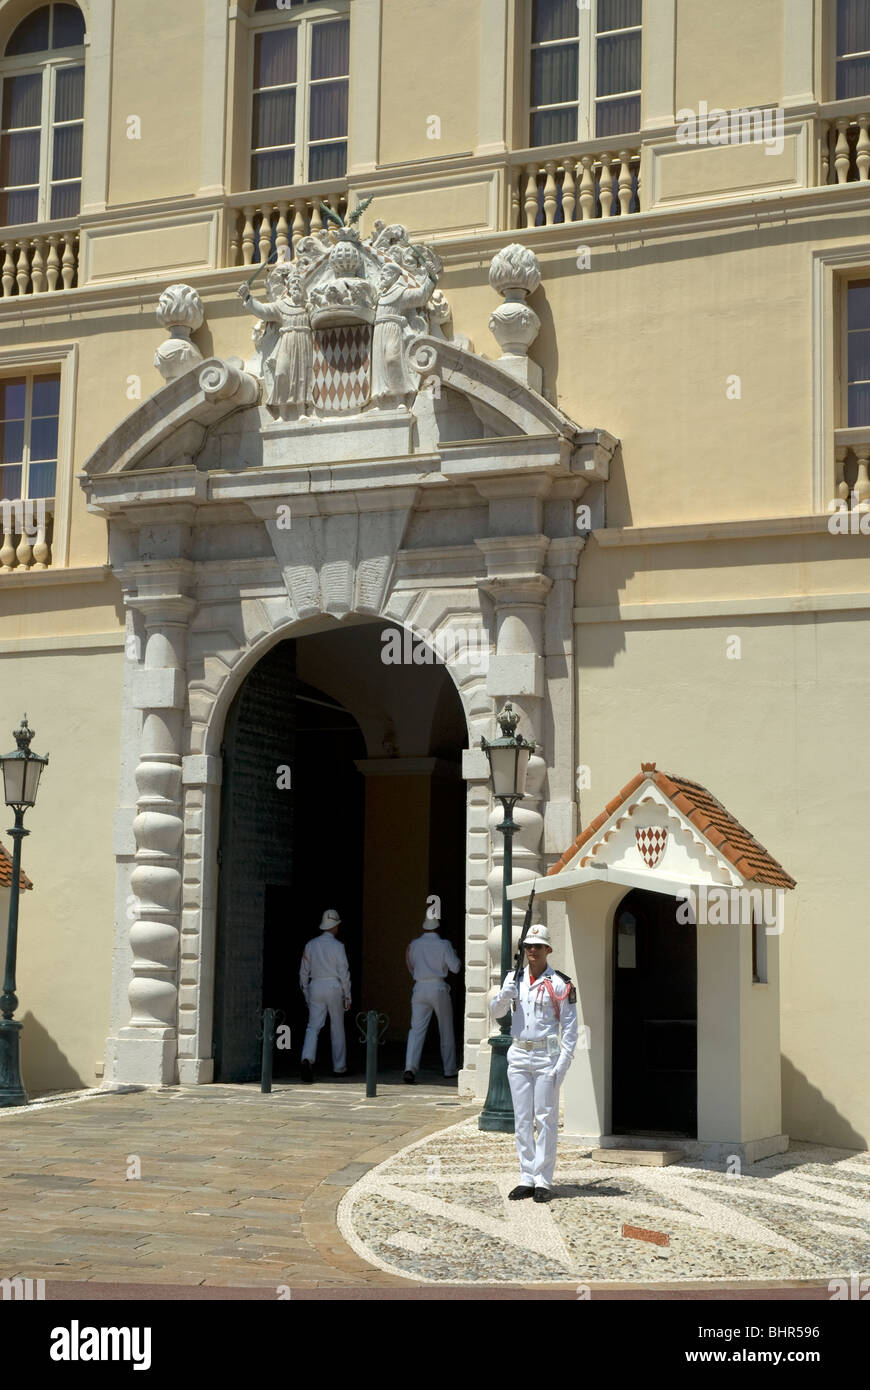 Palace guards at the entrance of the Prince's Palace of Monaco, Monte Carlo - Stock Image